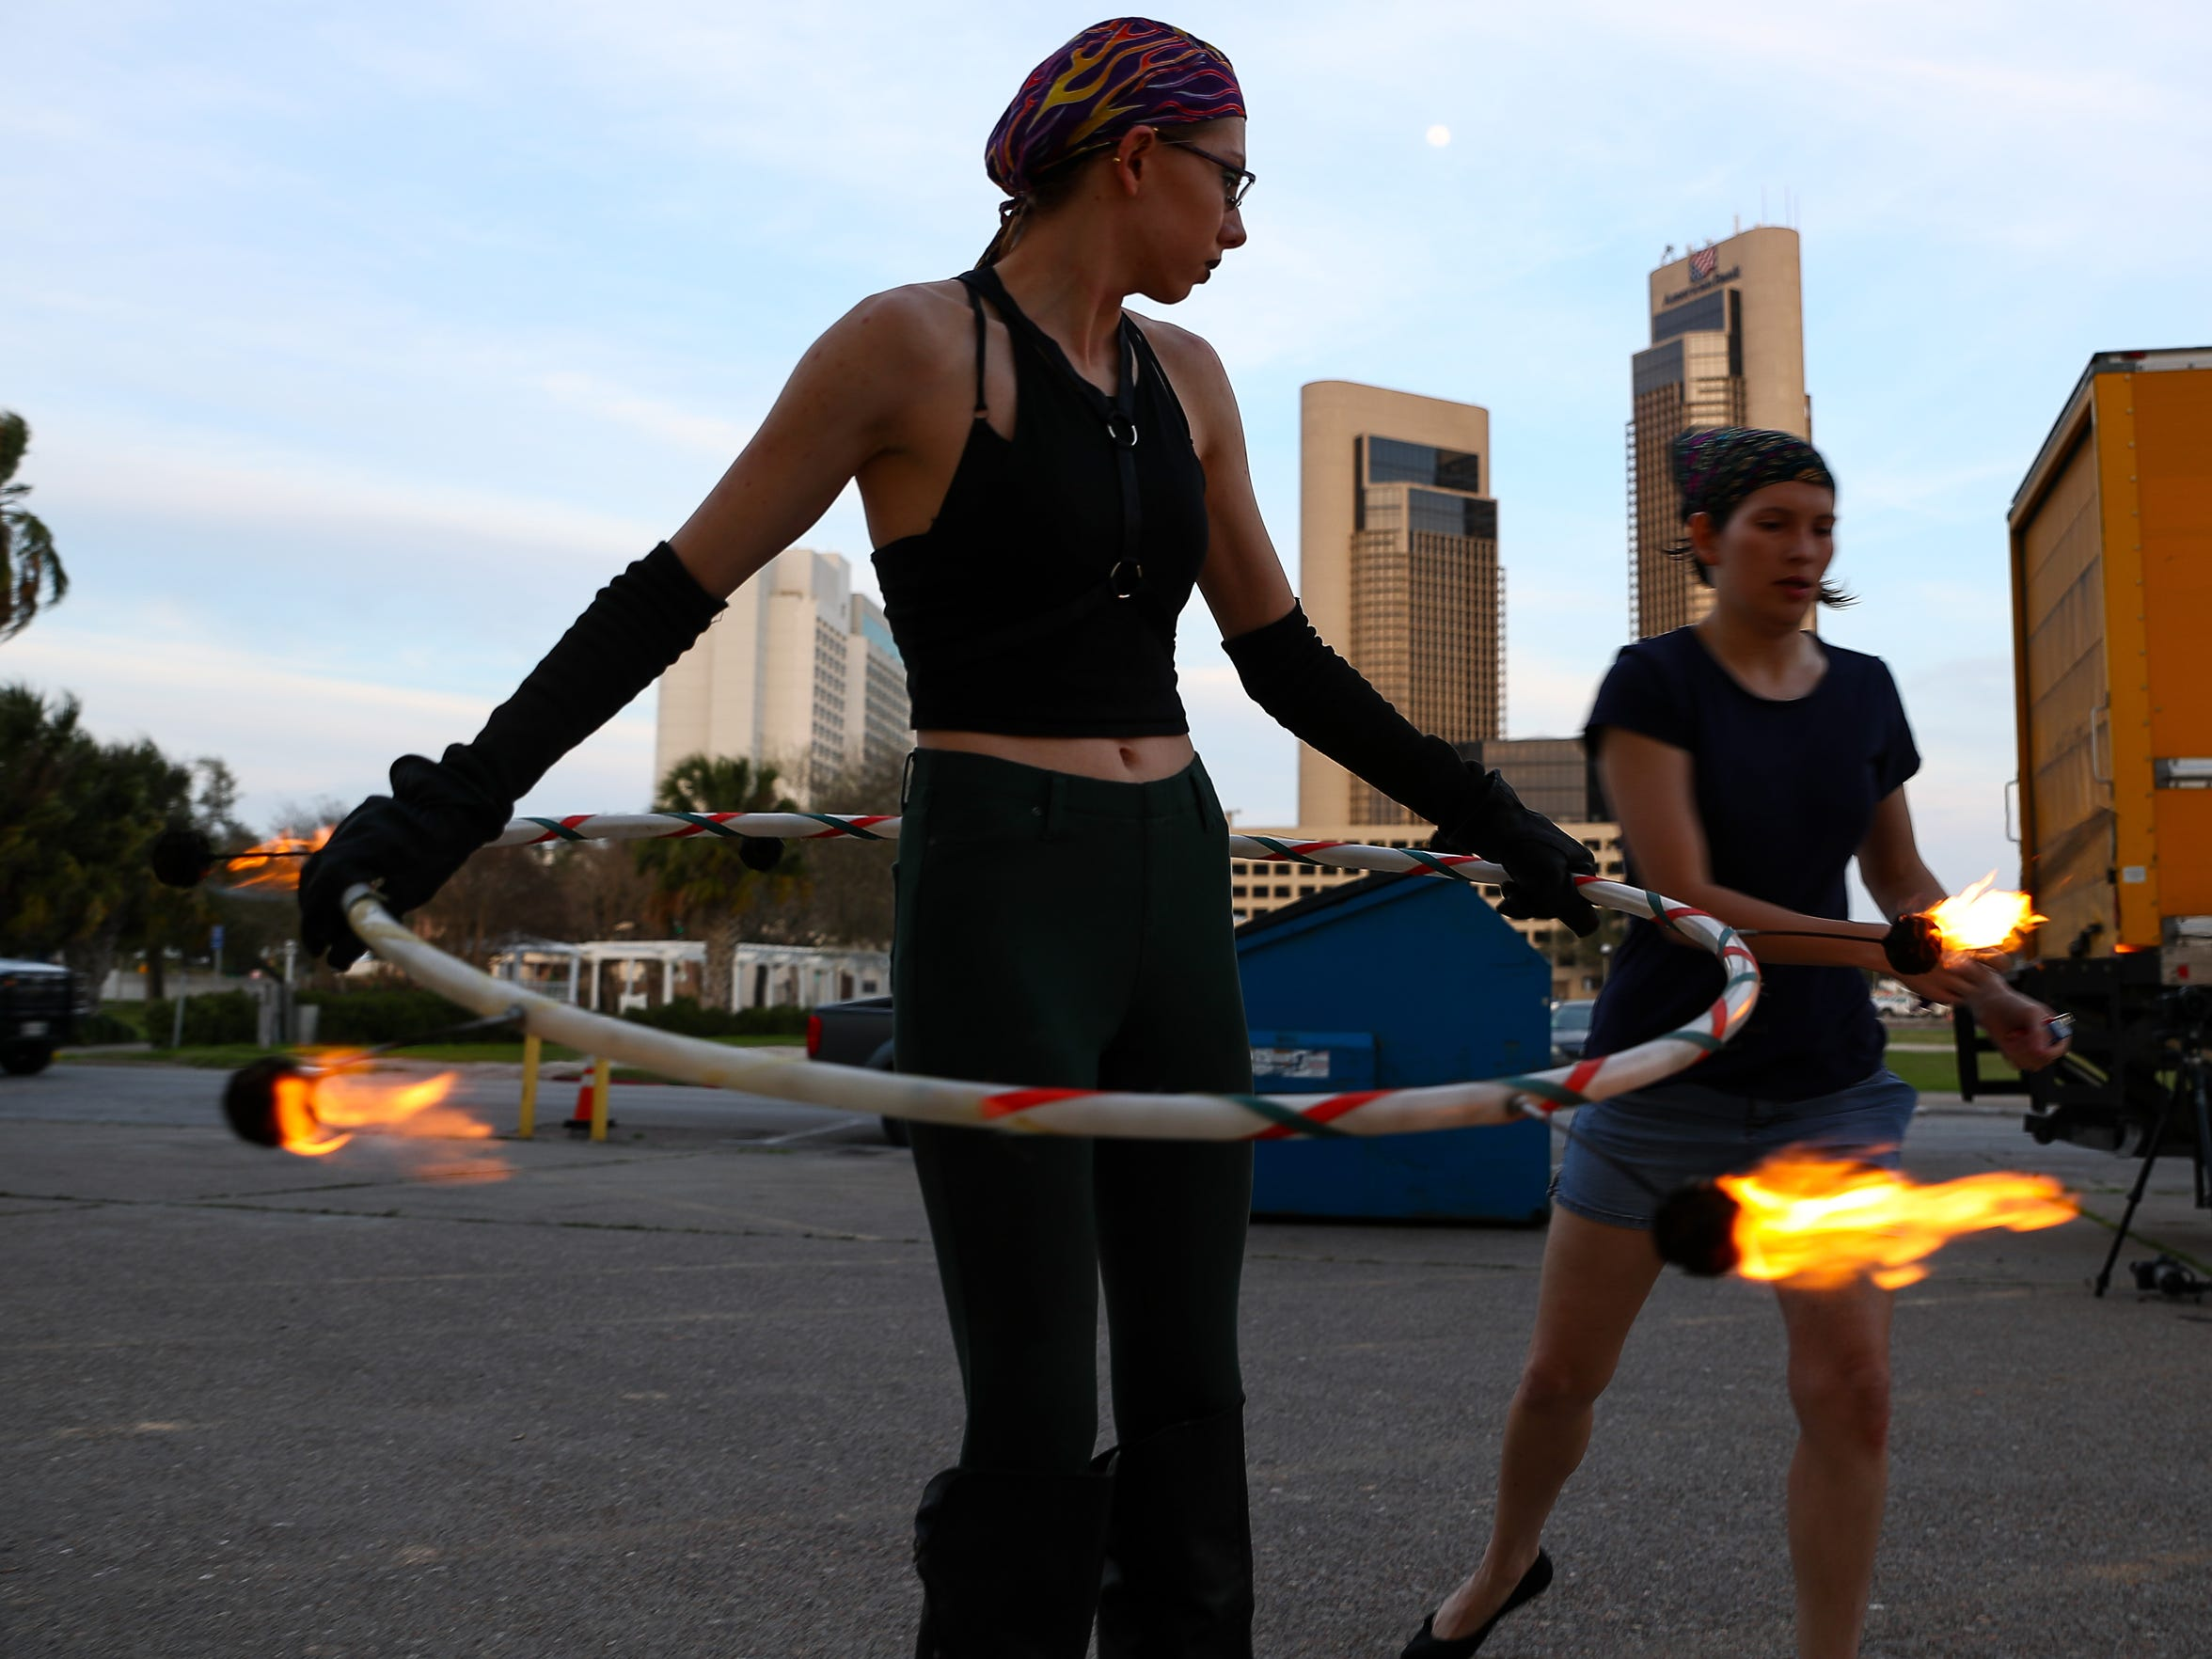 Viktoria Birr demonstrates fire spinning using a hula hoop outside the Corpus Christi Caller-Times building on Tuesday, Feb. 27,2018.